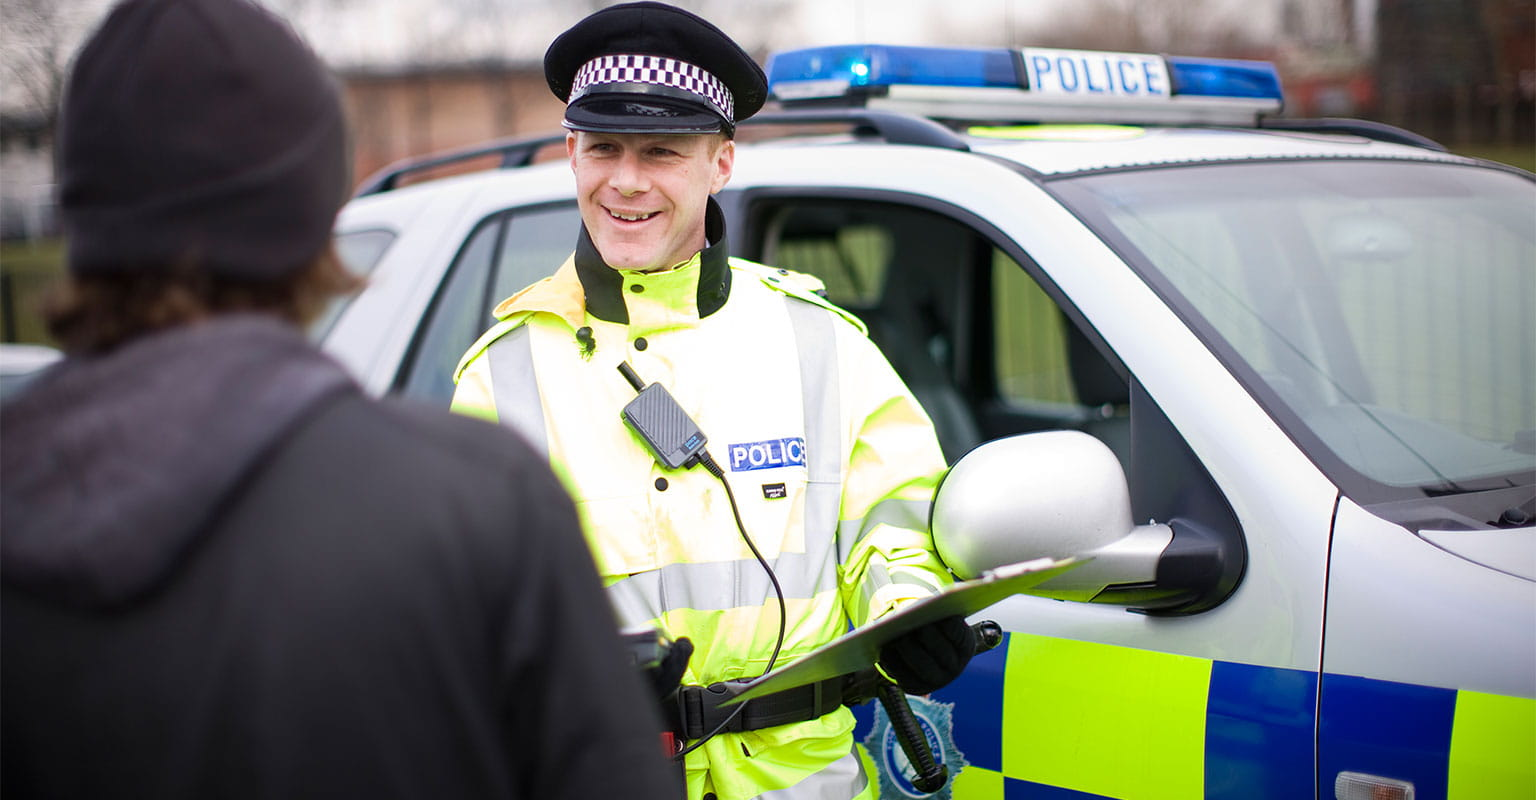 Police officer using a Brother portable printer to issue a ticket